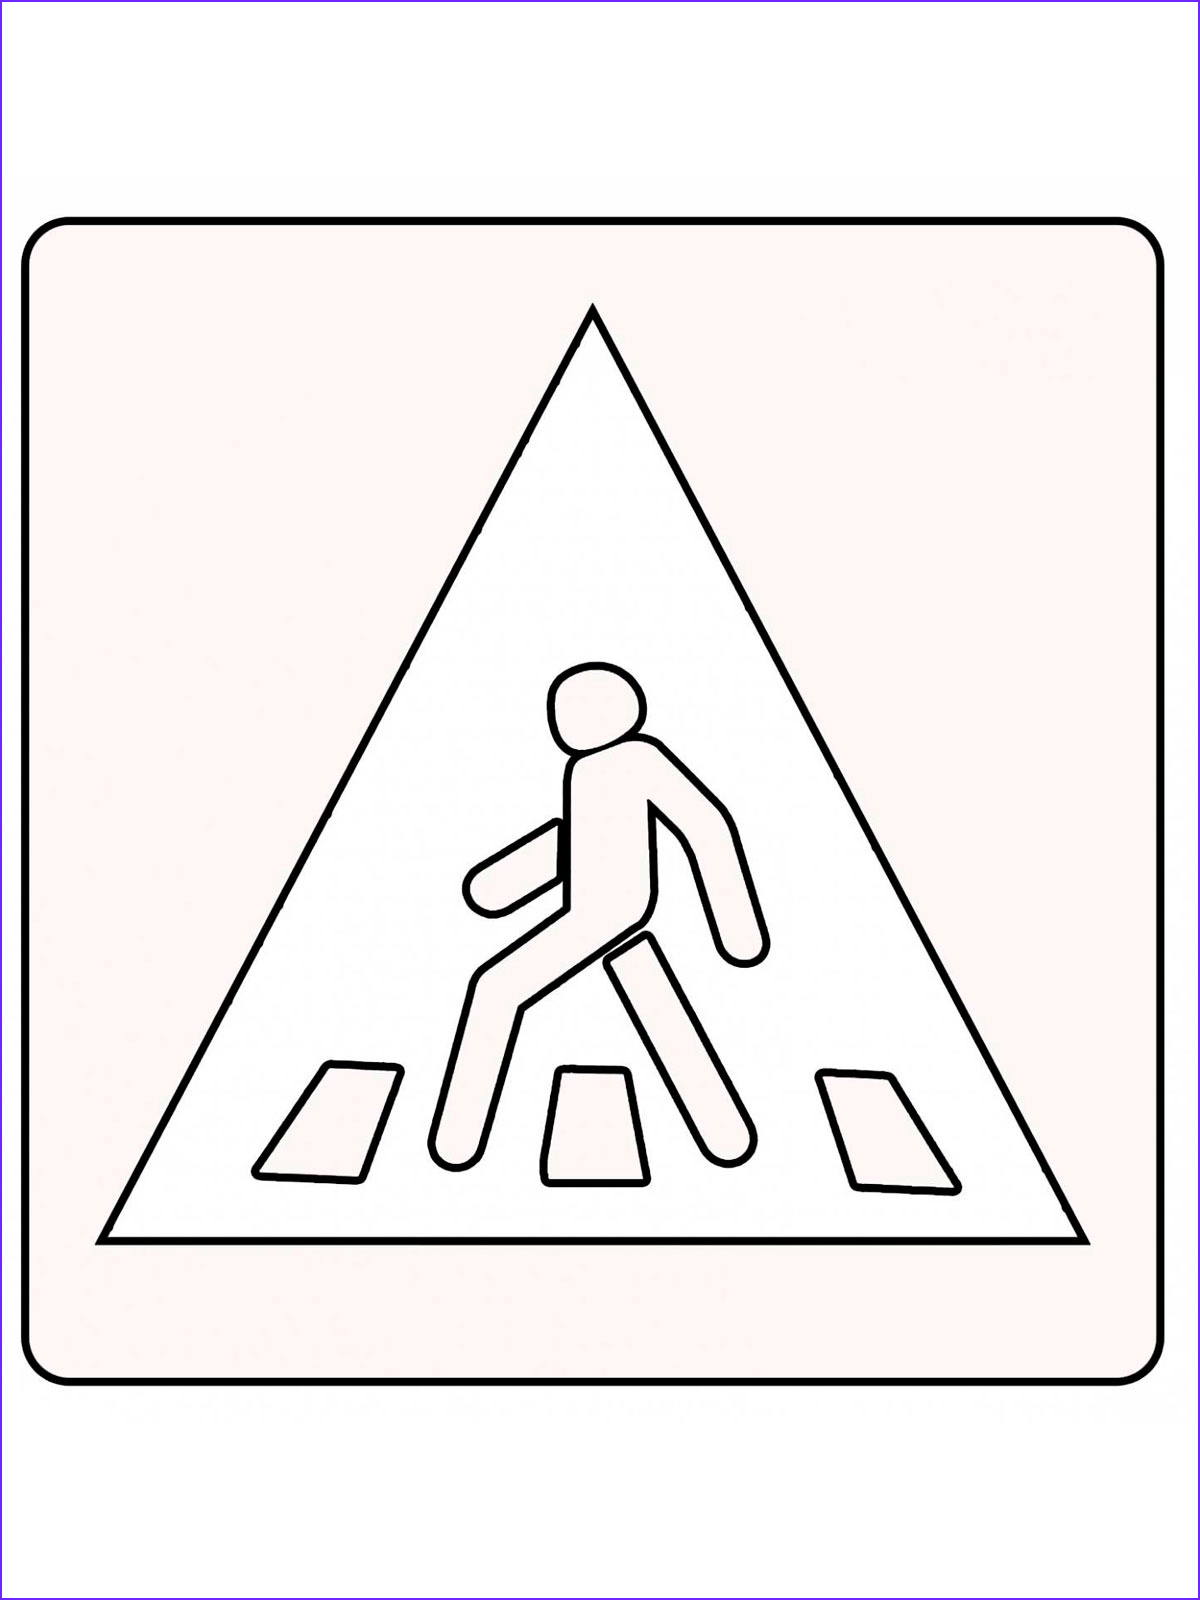 painting coloring road signs